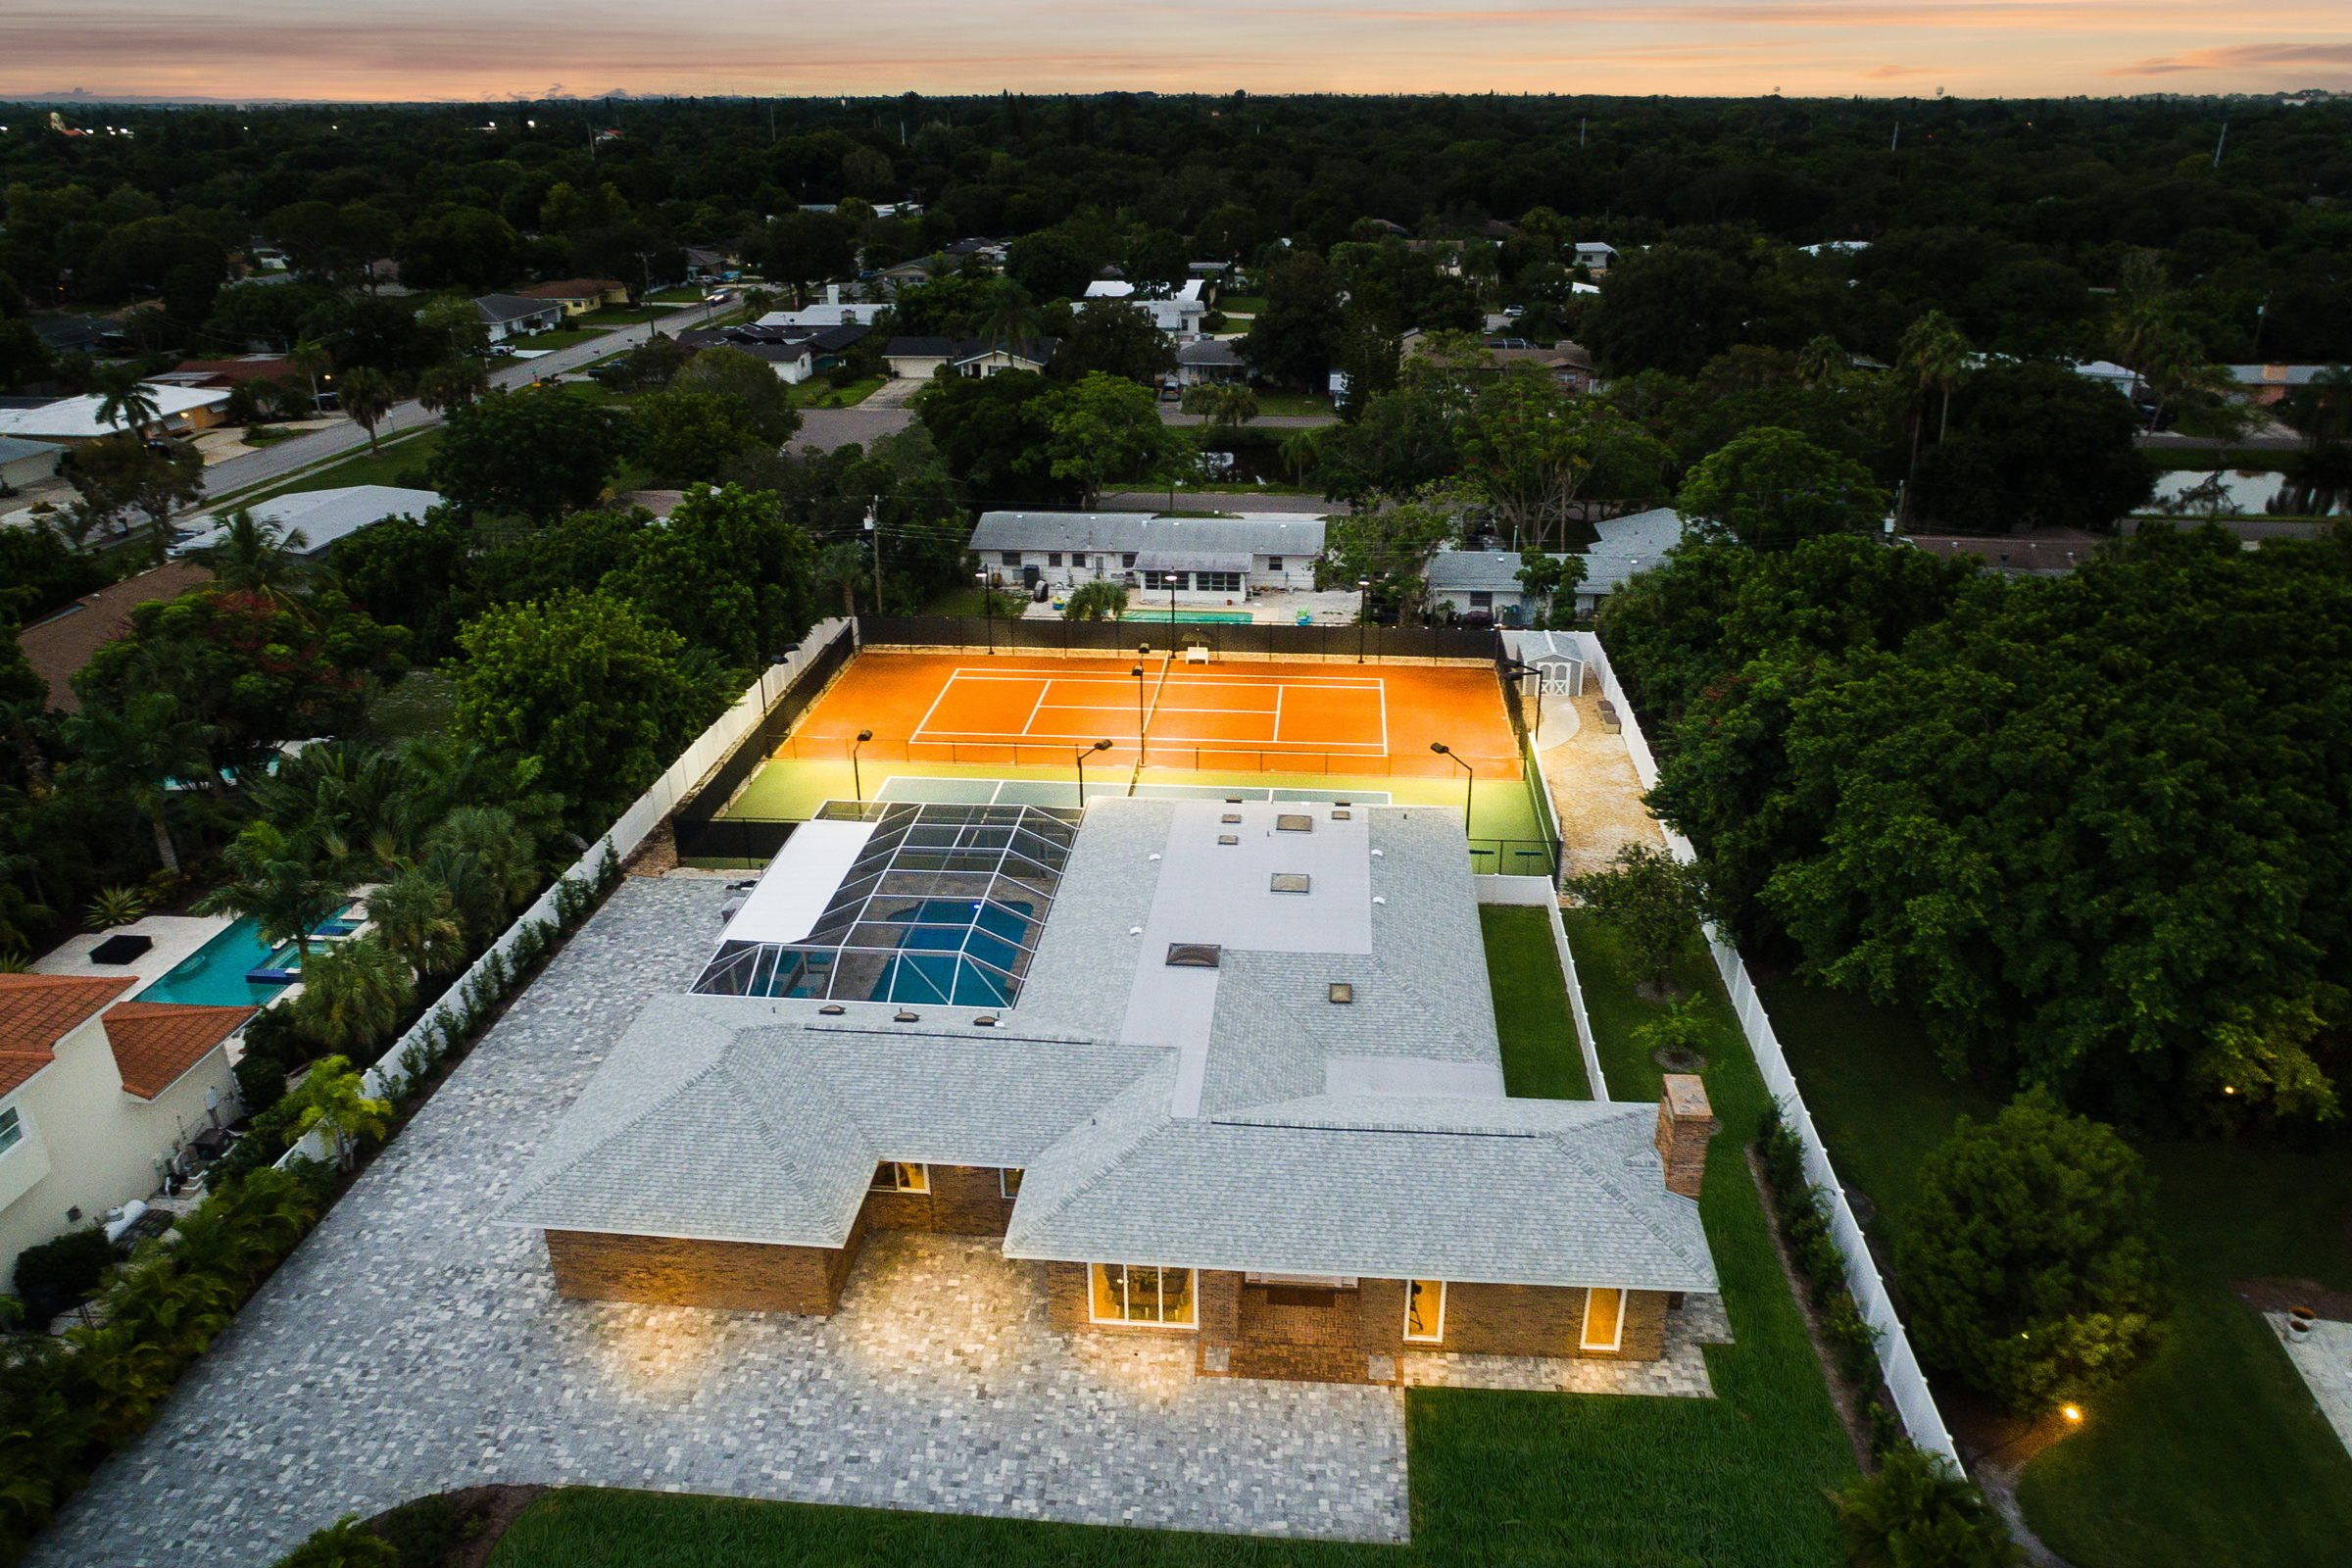 Renovated to perfection in 2014, this one-acre estate combines world-class tennis facilities with contemporary design for eco-savvy living on Florida's Gulf Coast.